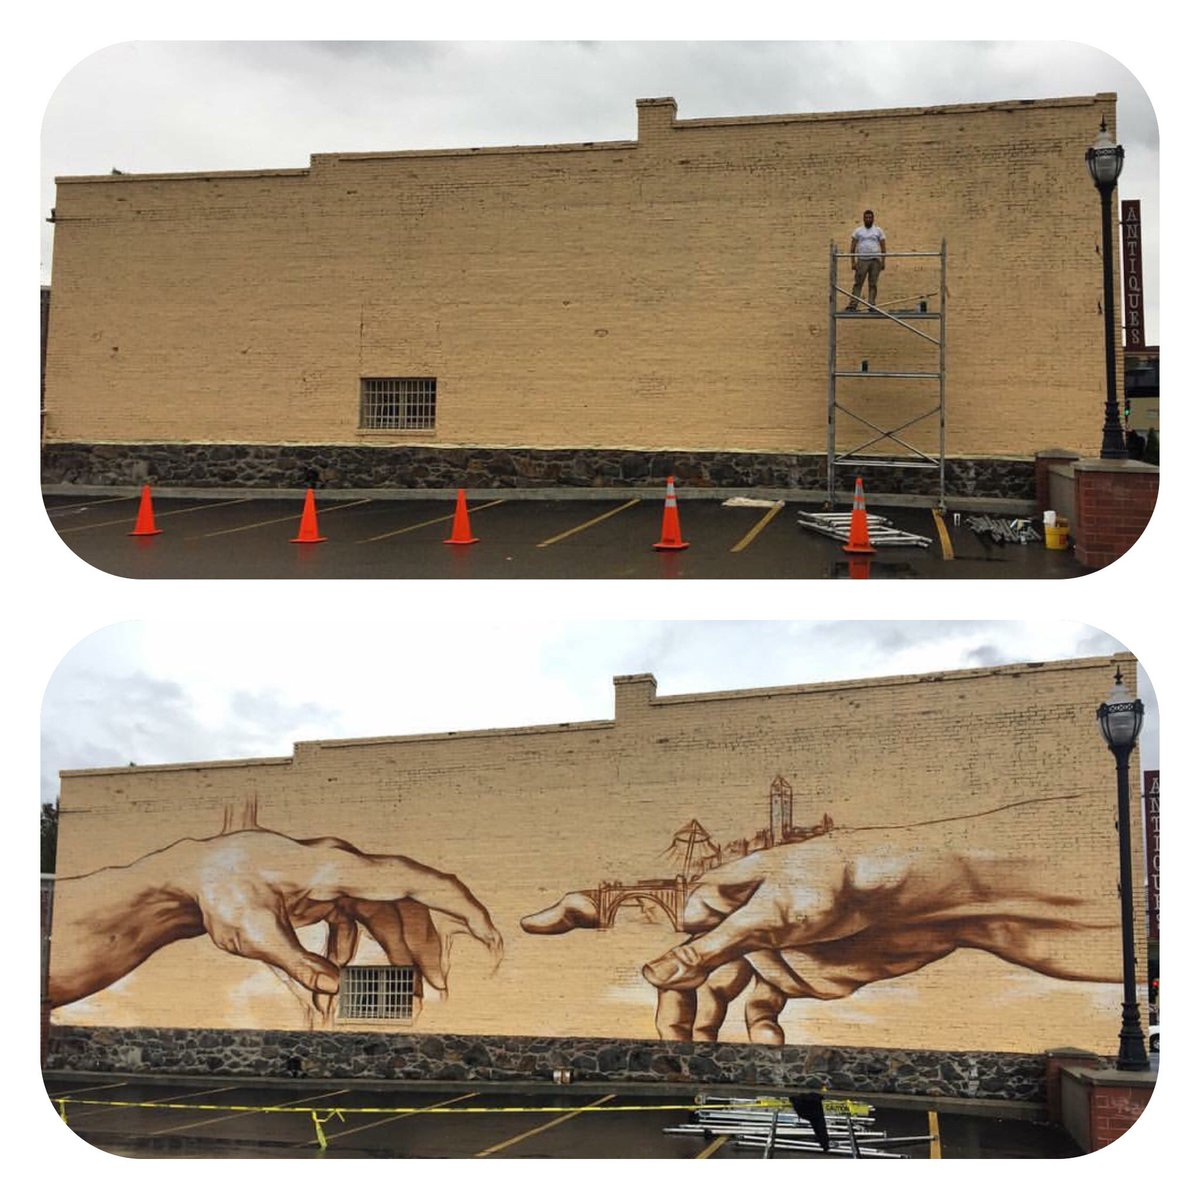 Day 1 and Day 4. #Spokane #artist Daniel Lopez and his #mural at Division and Sprague.